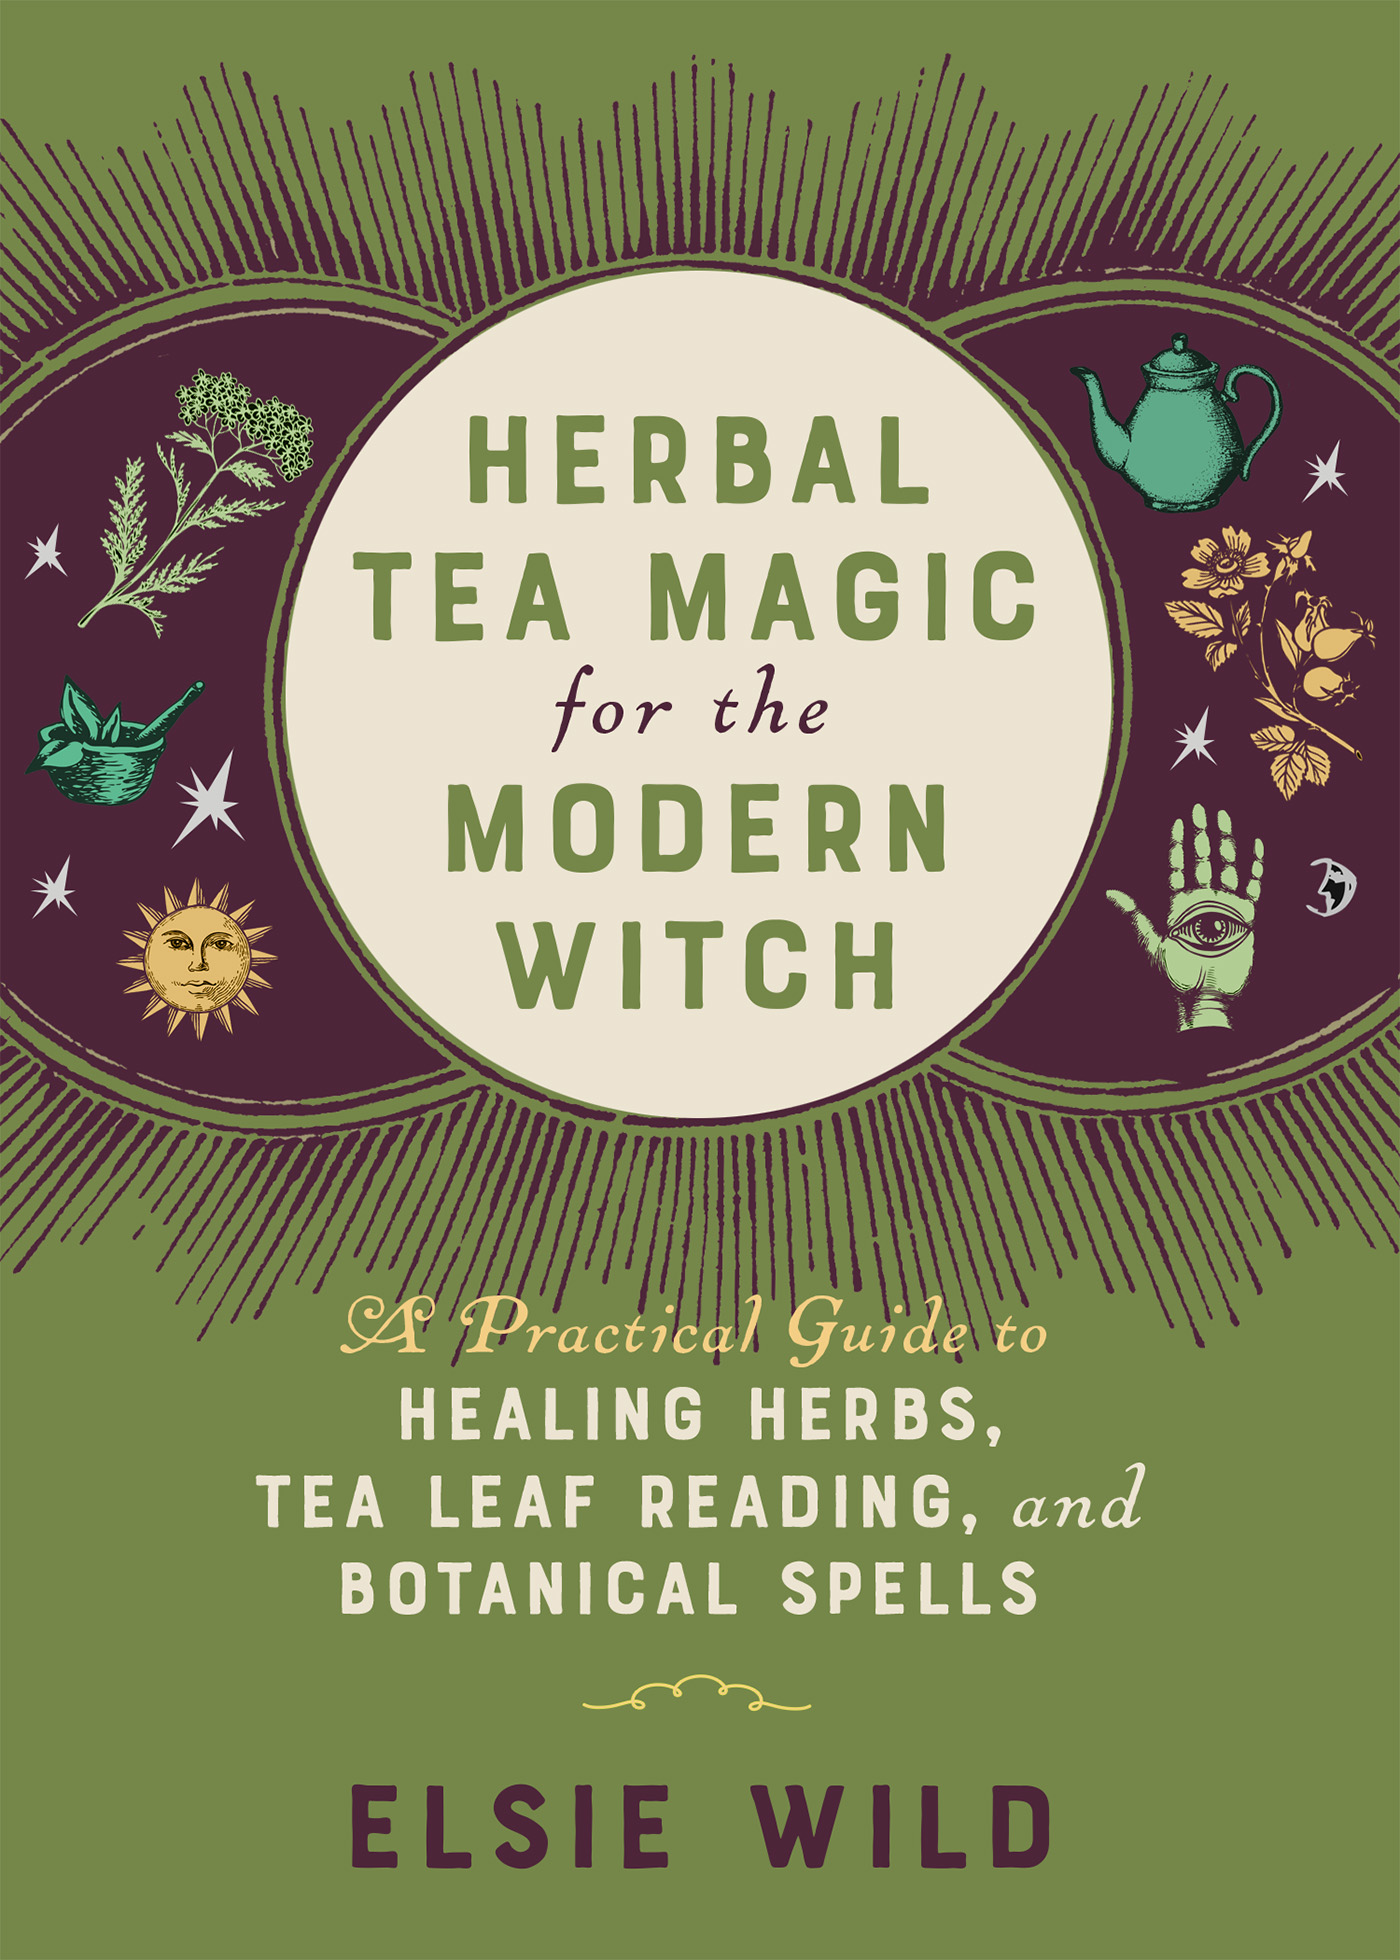 Herbal Tea Magic for the Modern Witch